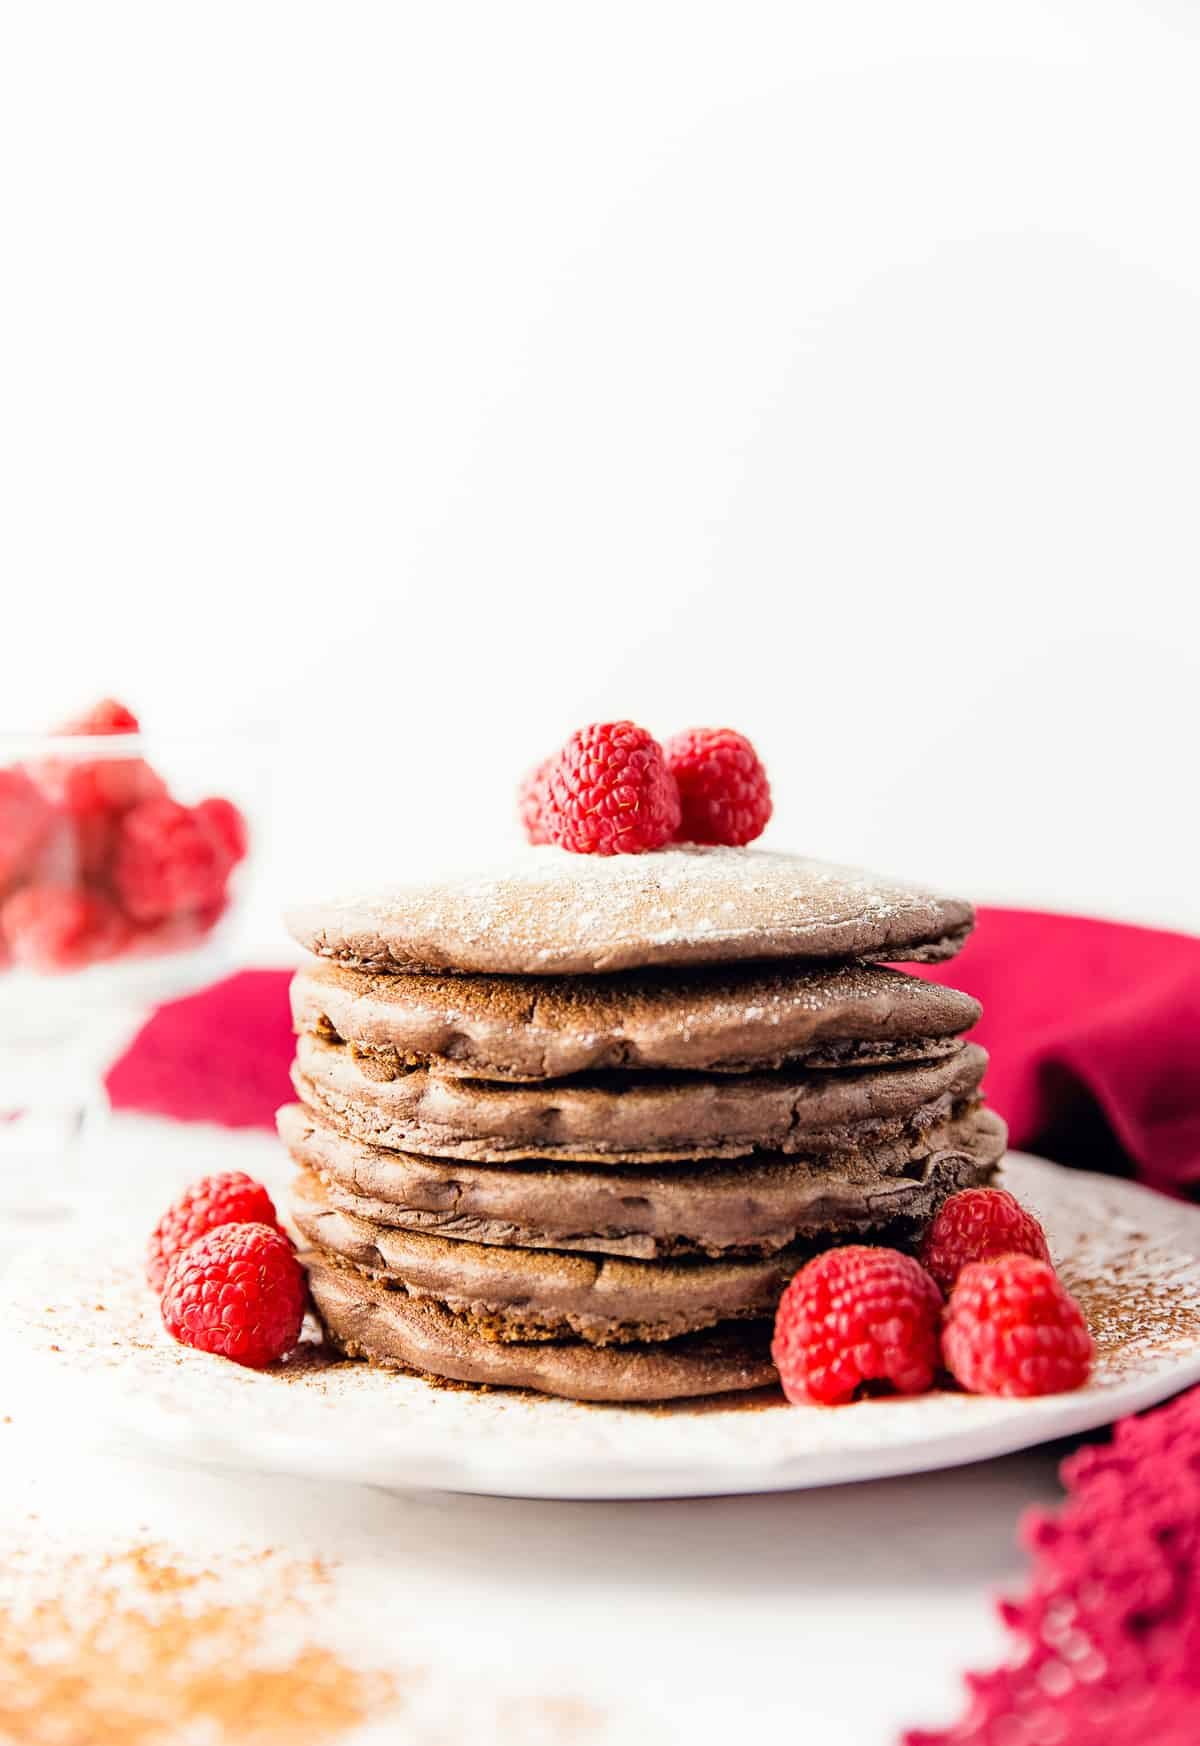 chocolate pancakes, pancakes, chocolate, vegan, vegetarian, whole food plant based, gluten free, recipe, wfpb, healthy, oil free, no refined sugar, no oil, refined sugar free, breakfast, dessert, easy, fast, quick, dairy free